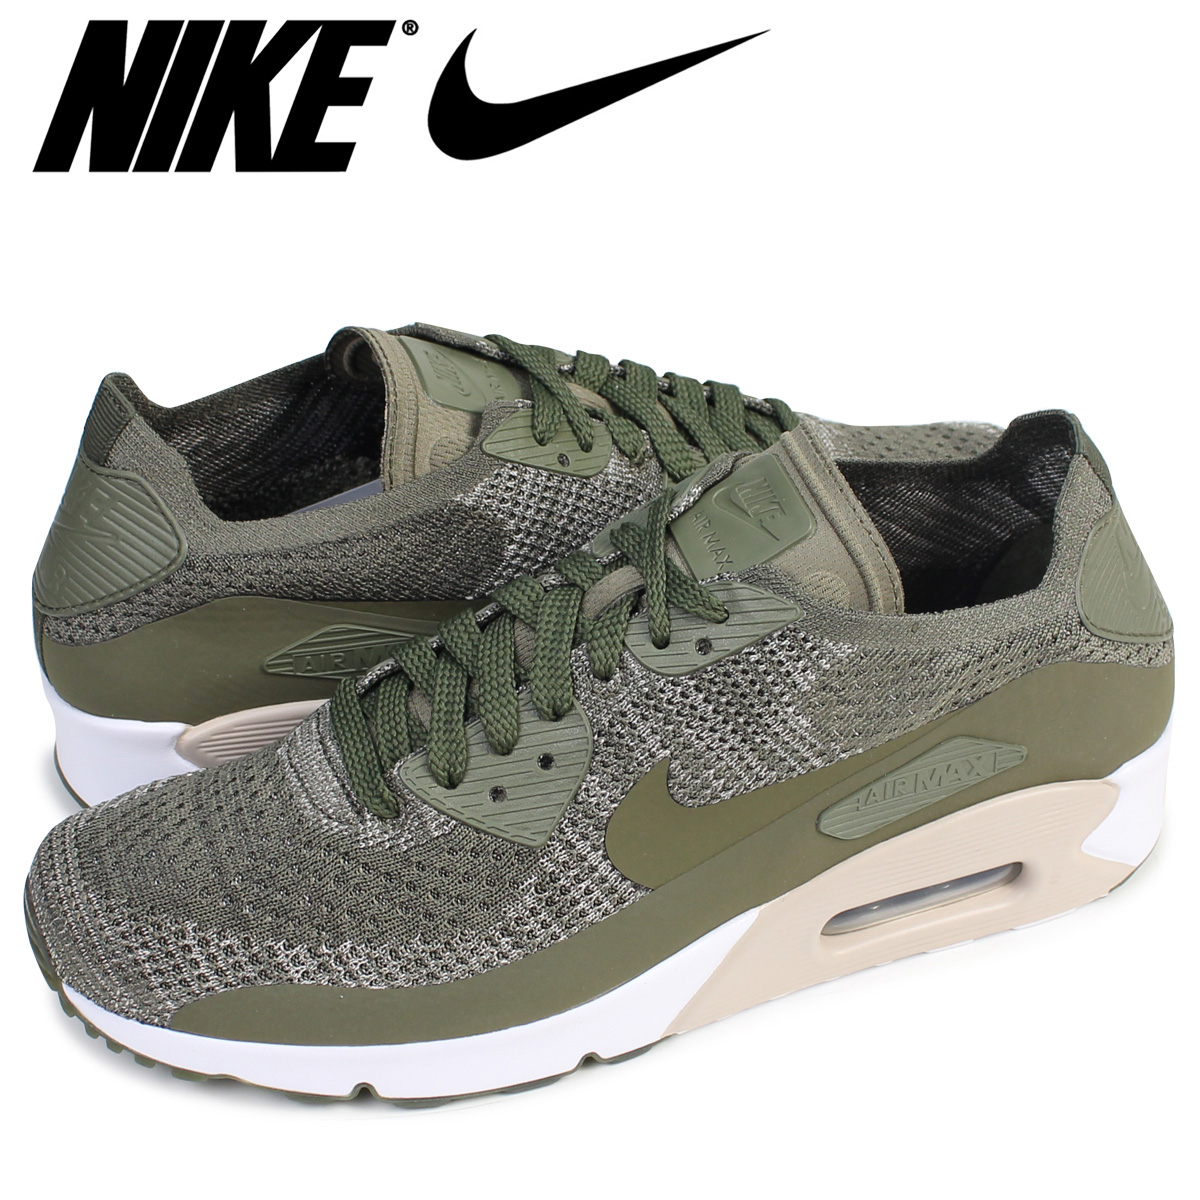 Best selling shoes Men Nike Air Max 90 Ultra 2.0 Flyknit